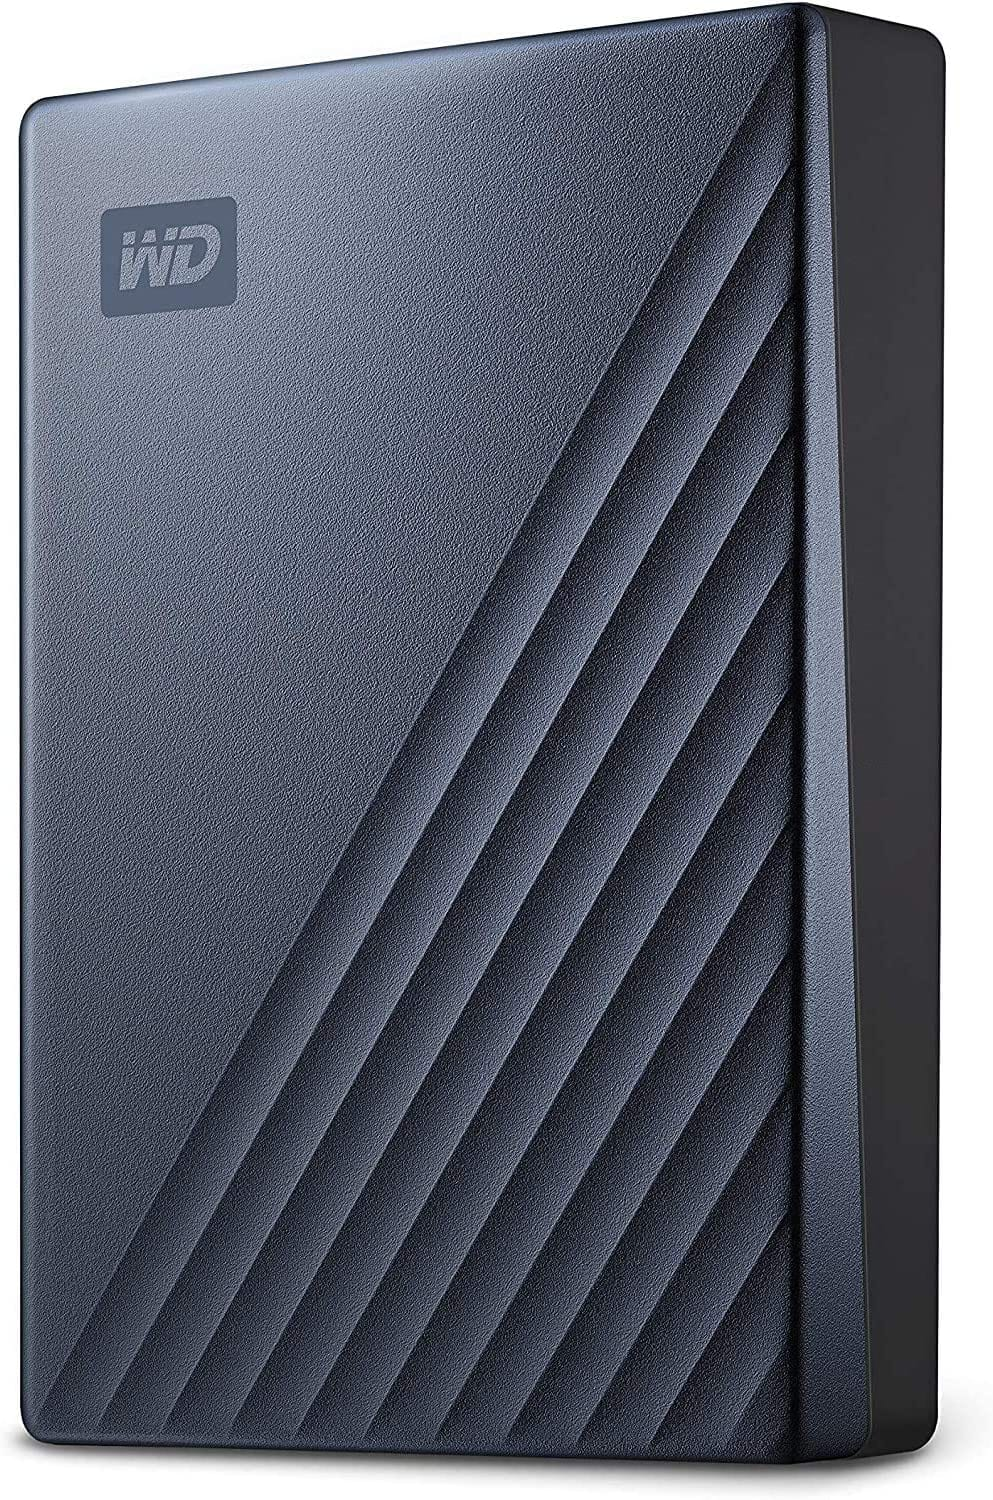 Prime Members: WD 5TB My Passport Ultra Blue Portable External Hard Drive HDD, USB-C and USB 3.1 Compatible $99.99 Free Shipping